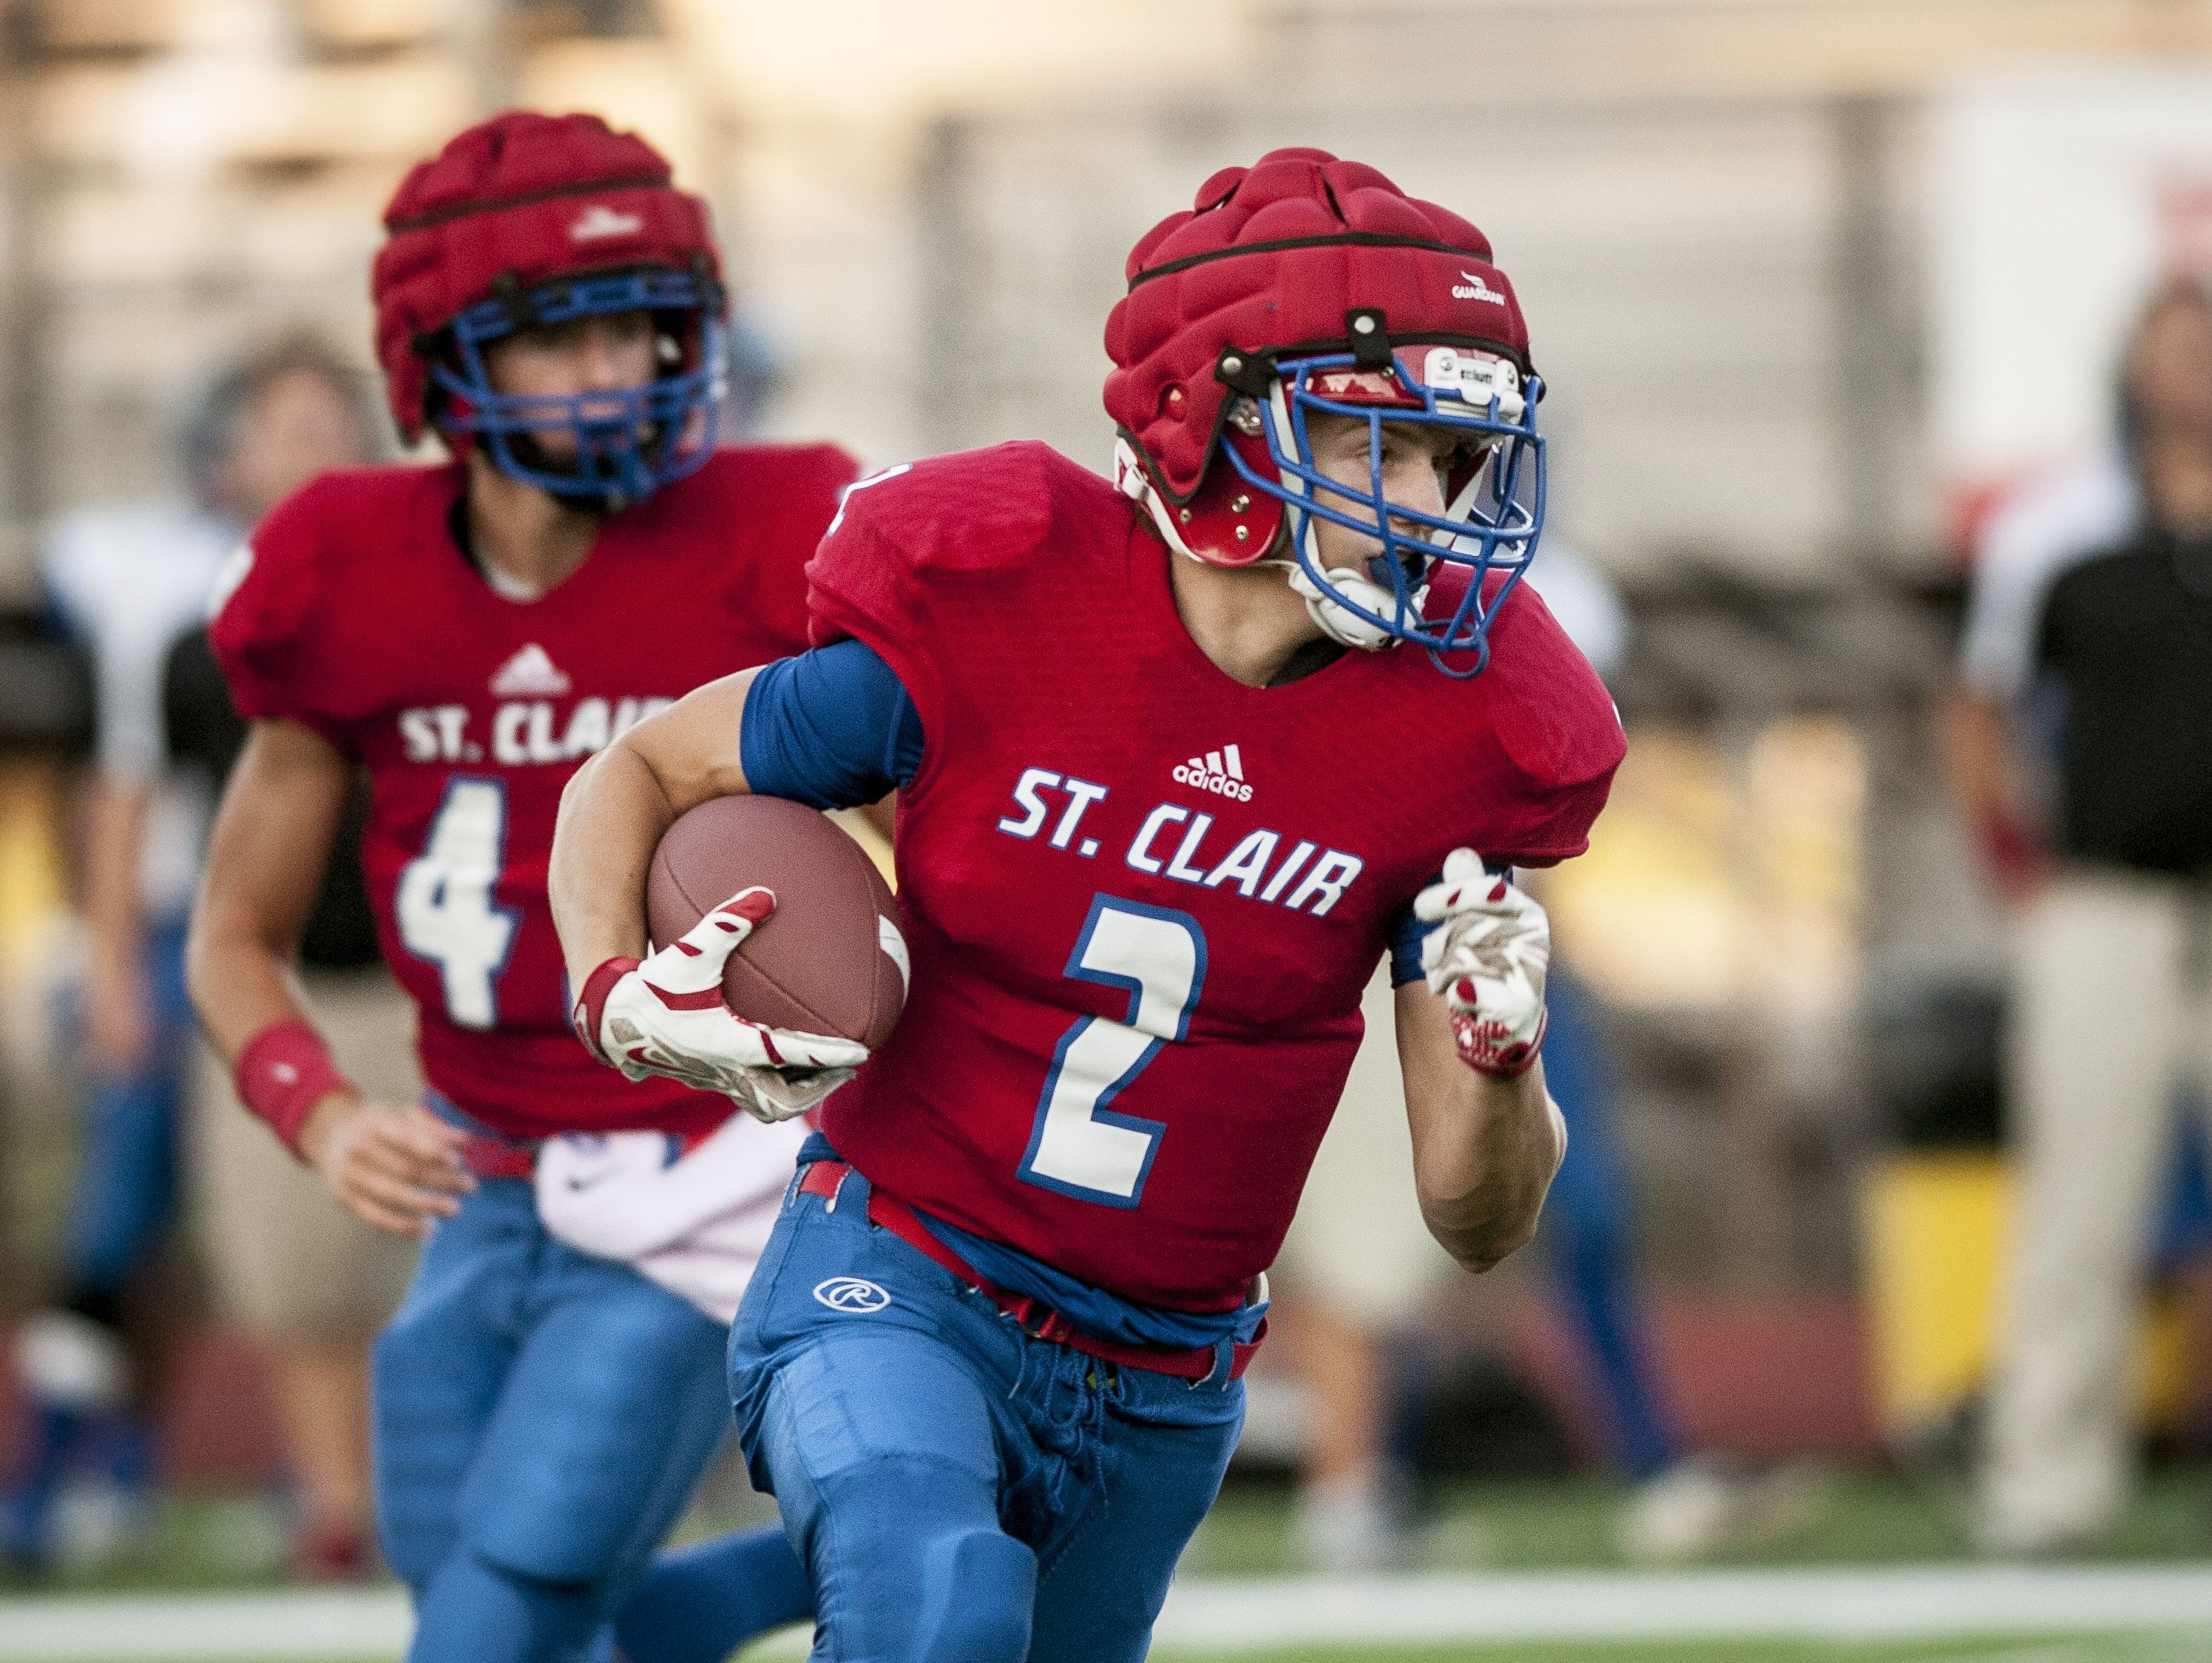 St. Clair's Ethan Mahn runs the ball during a football game Friday, September 2, 2016 at East China Stadium.